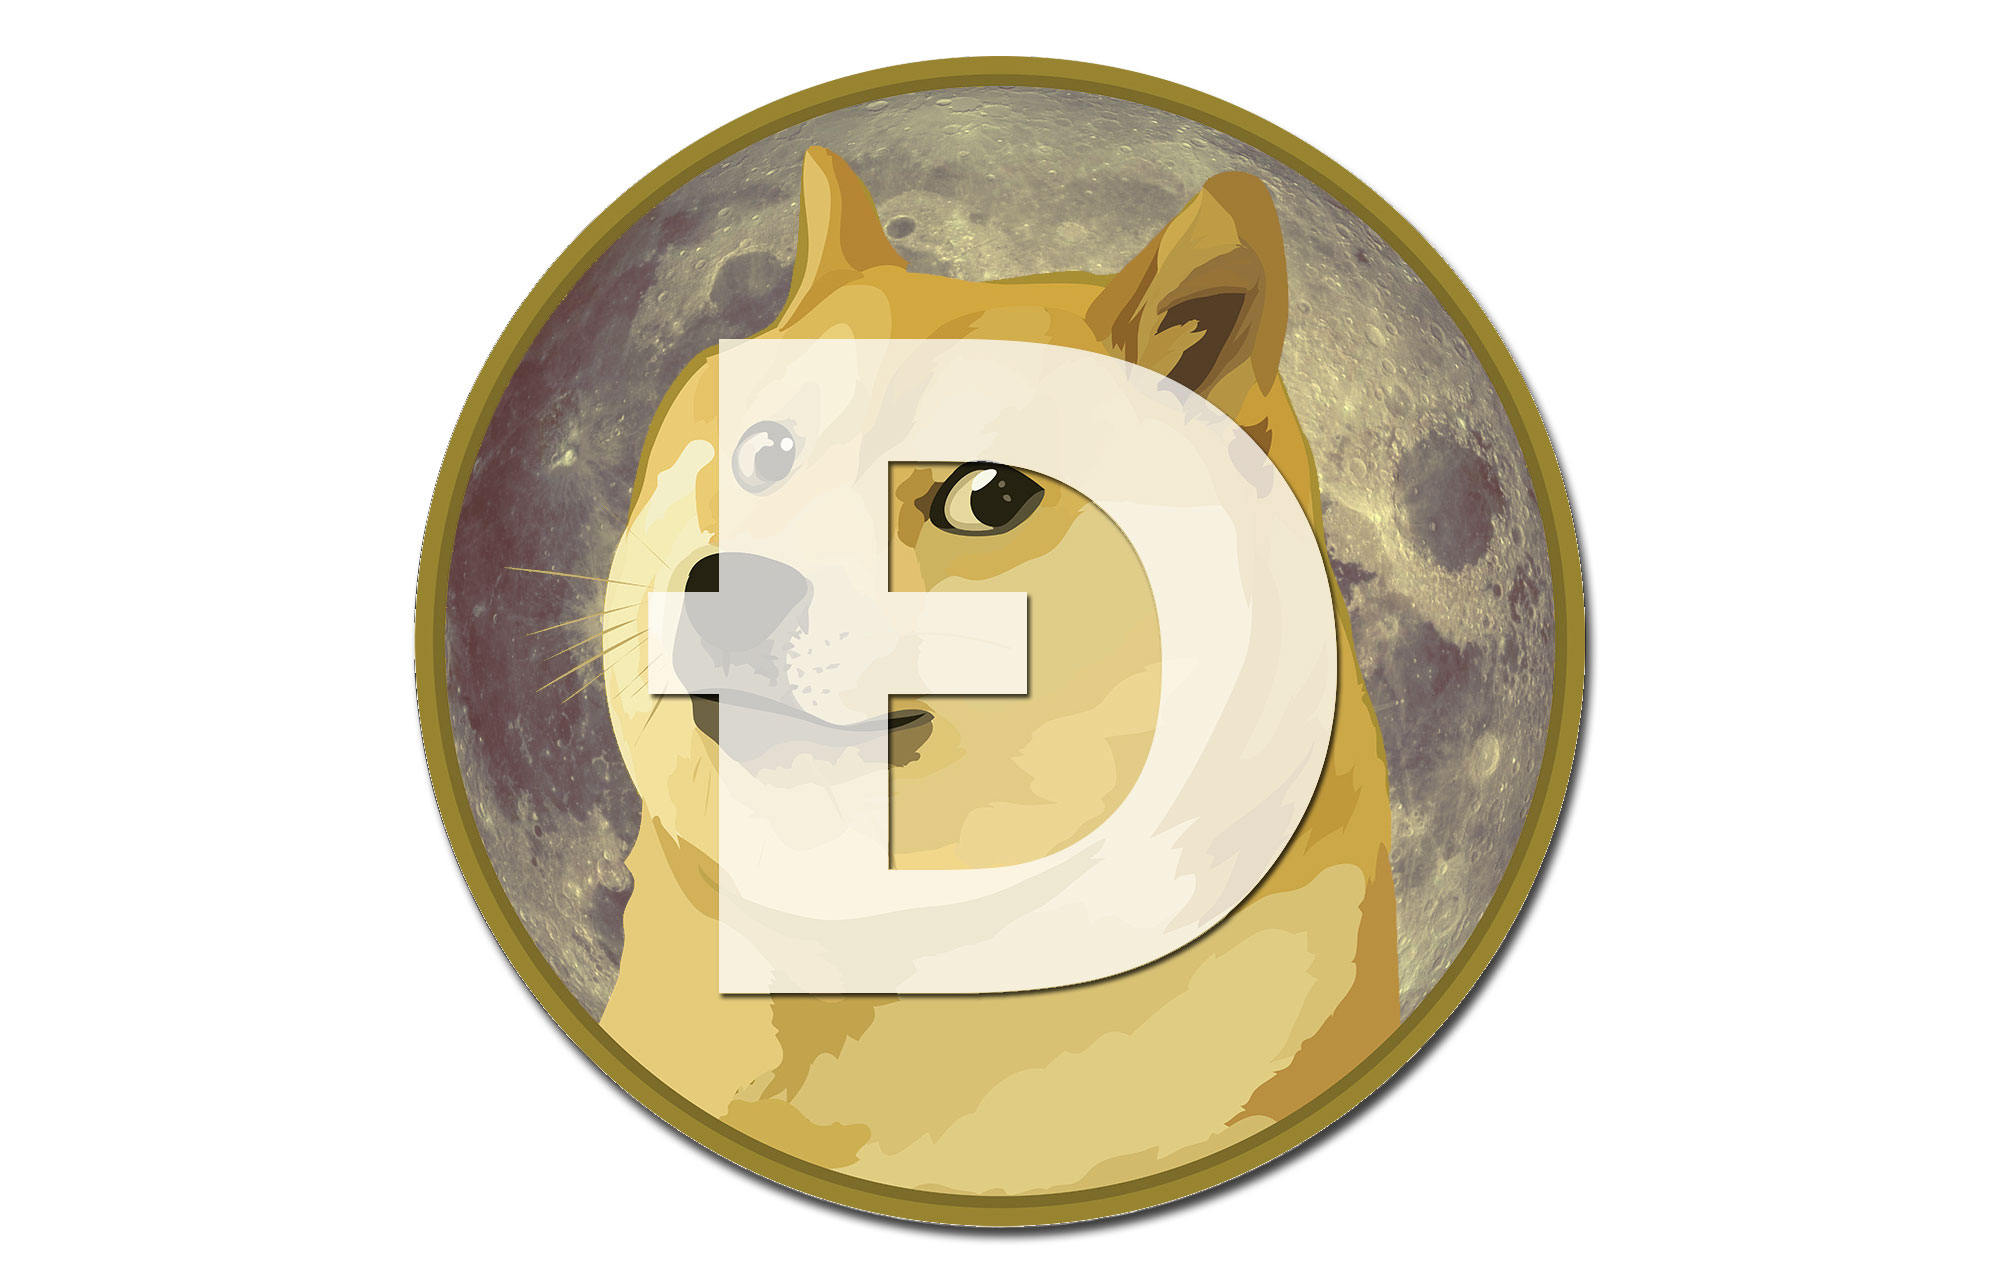 Dogecoin: The Definitive Guide